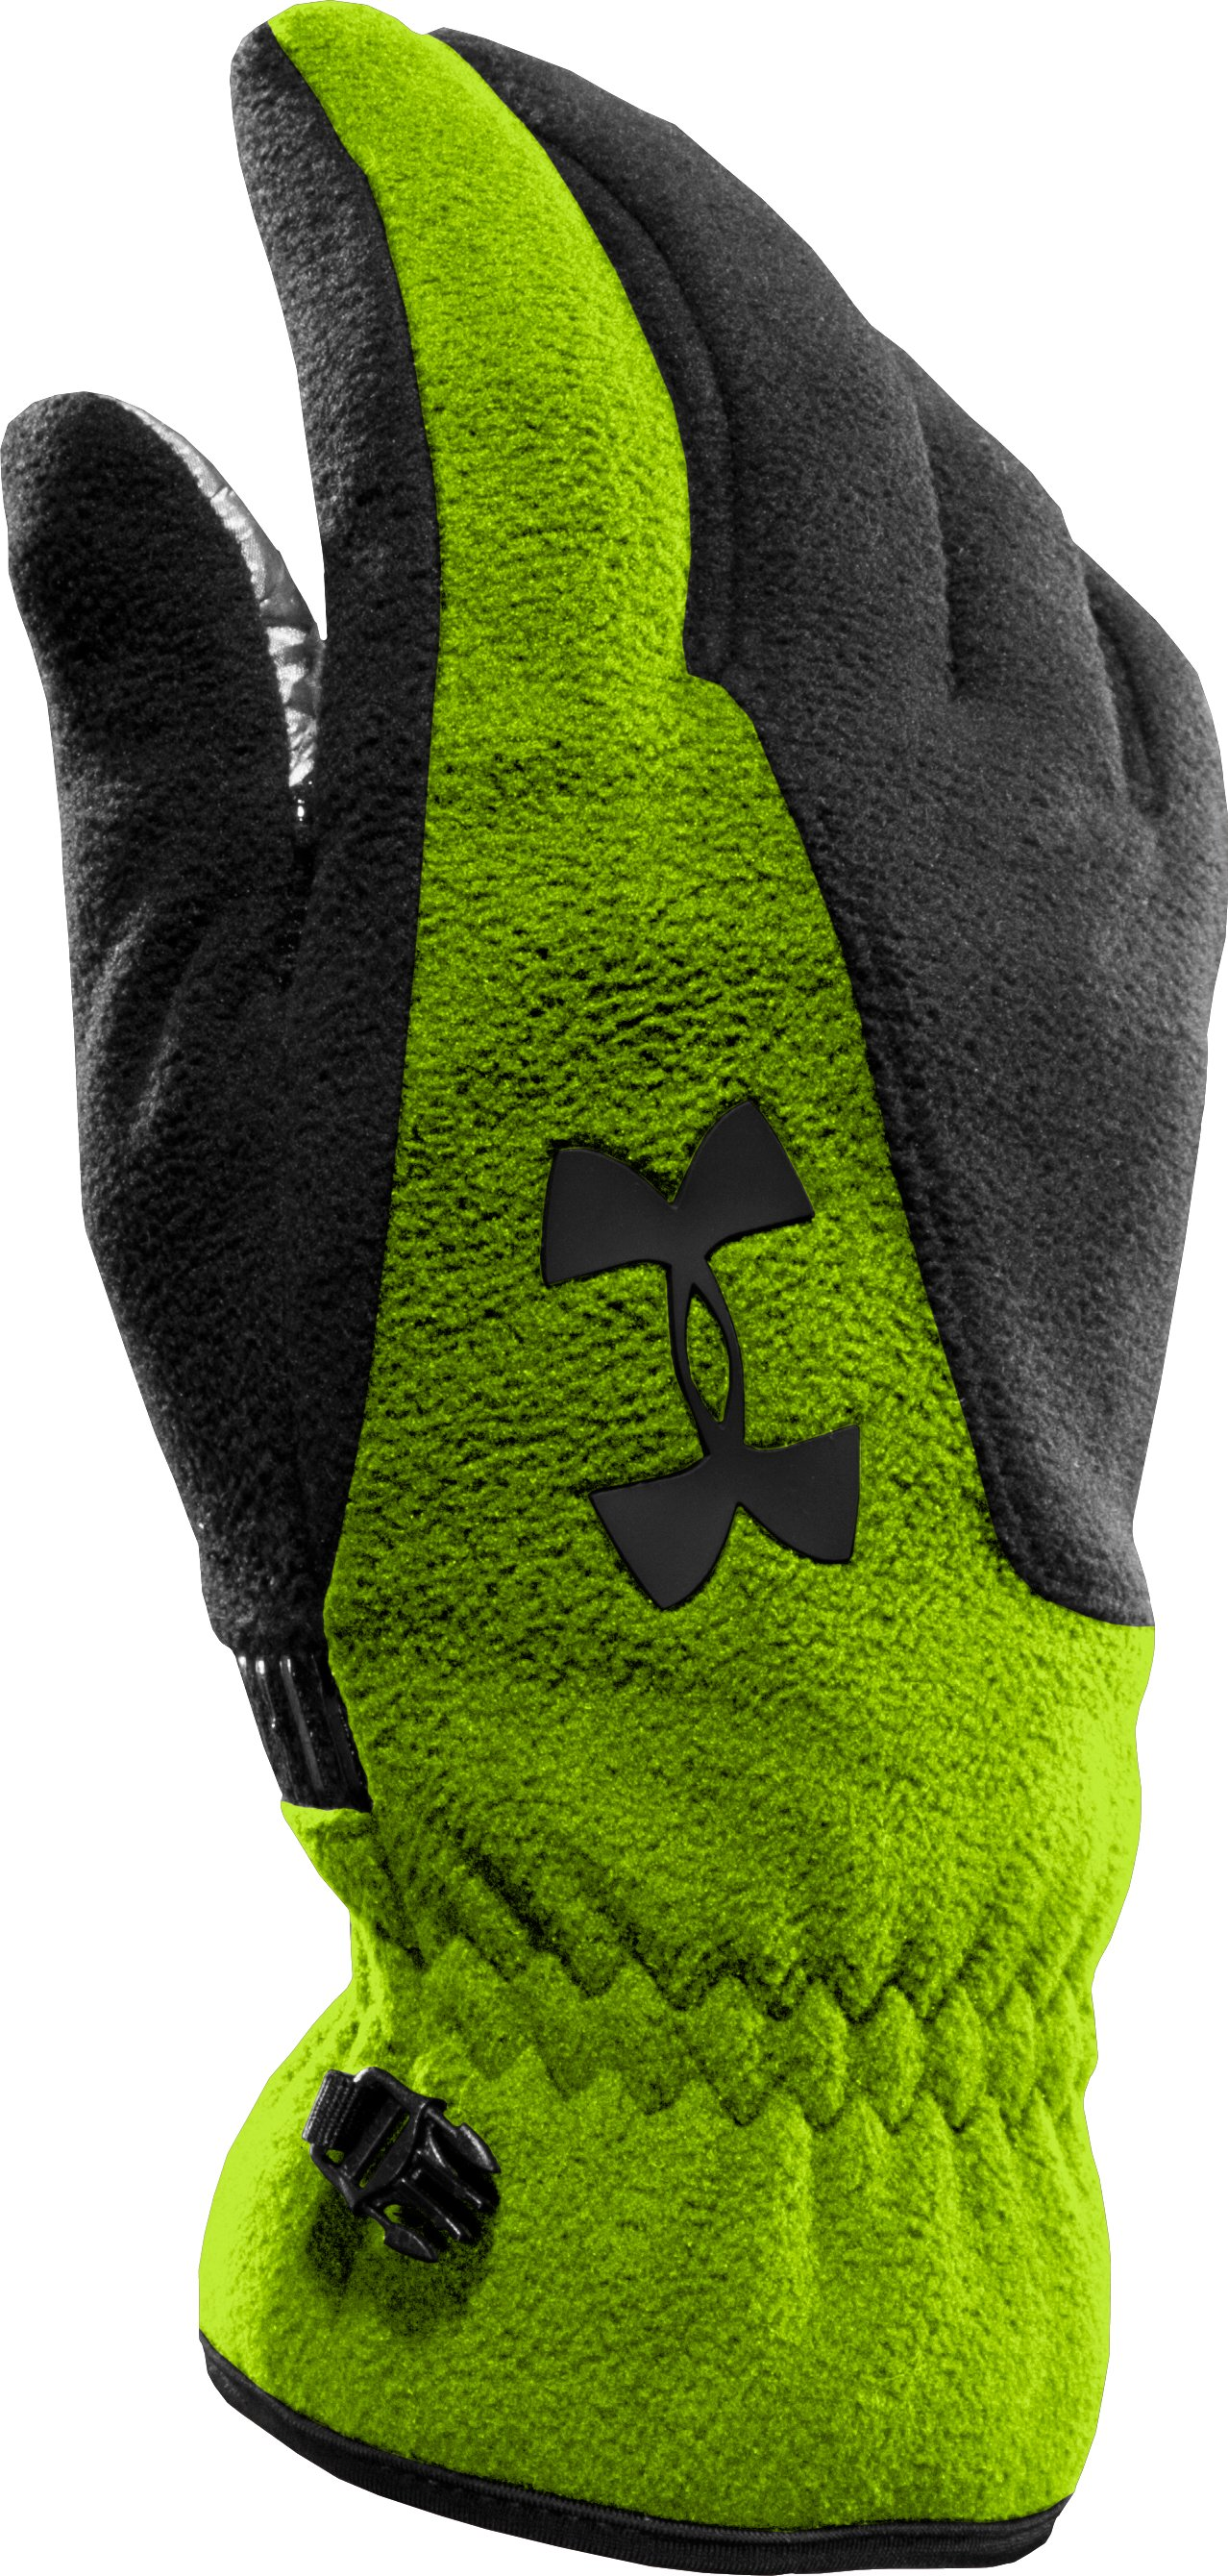 Men's ColdGear® Infrared Storm Convex Gloves, HYPER GREEN